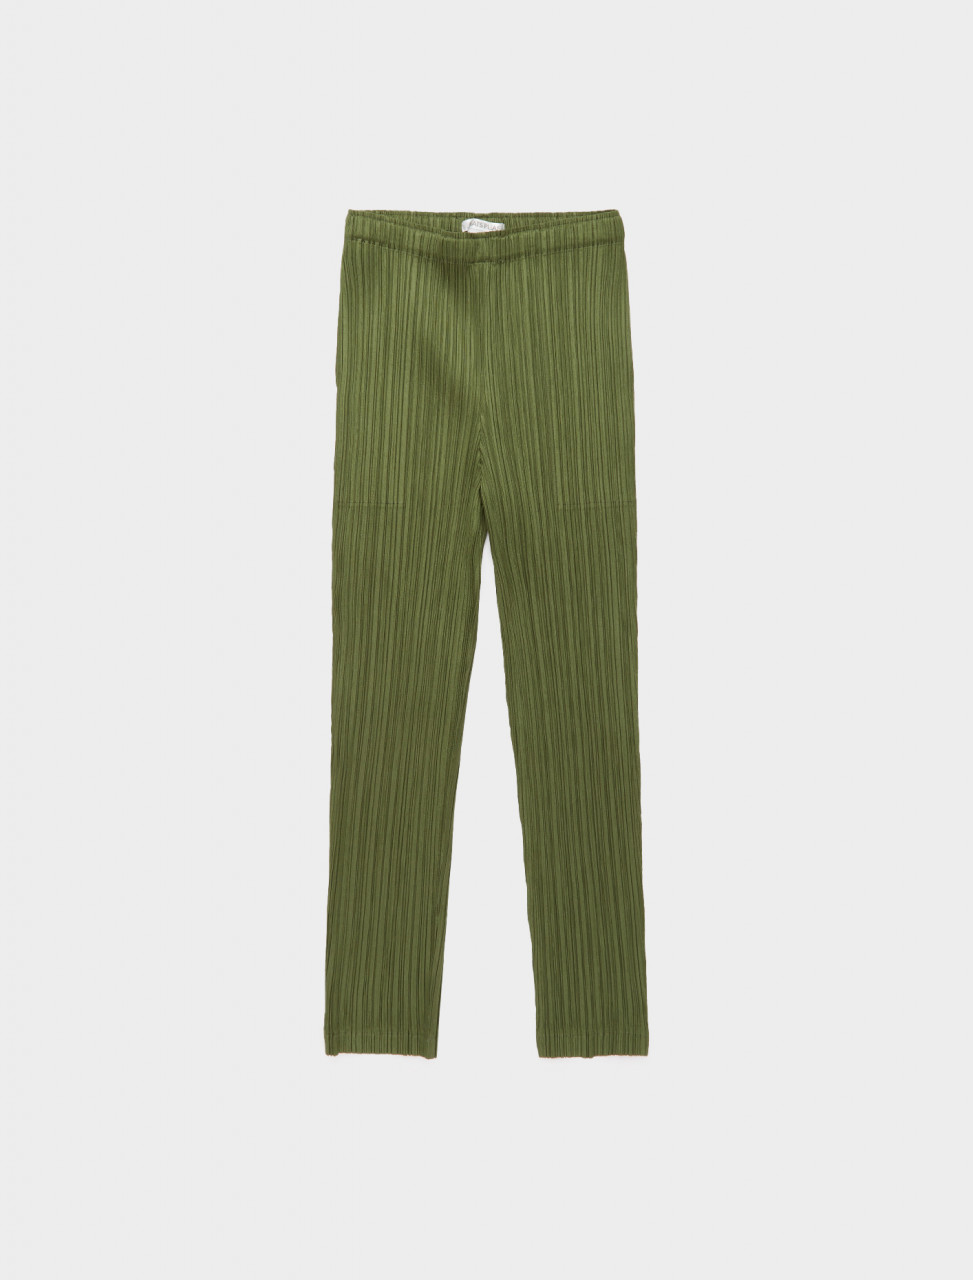 286-PP08JF411-65 ISSEY MIYAKE PLEATS PLEASE CROPPED TROUSERS KHAKI